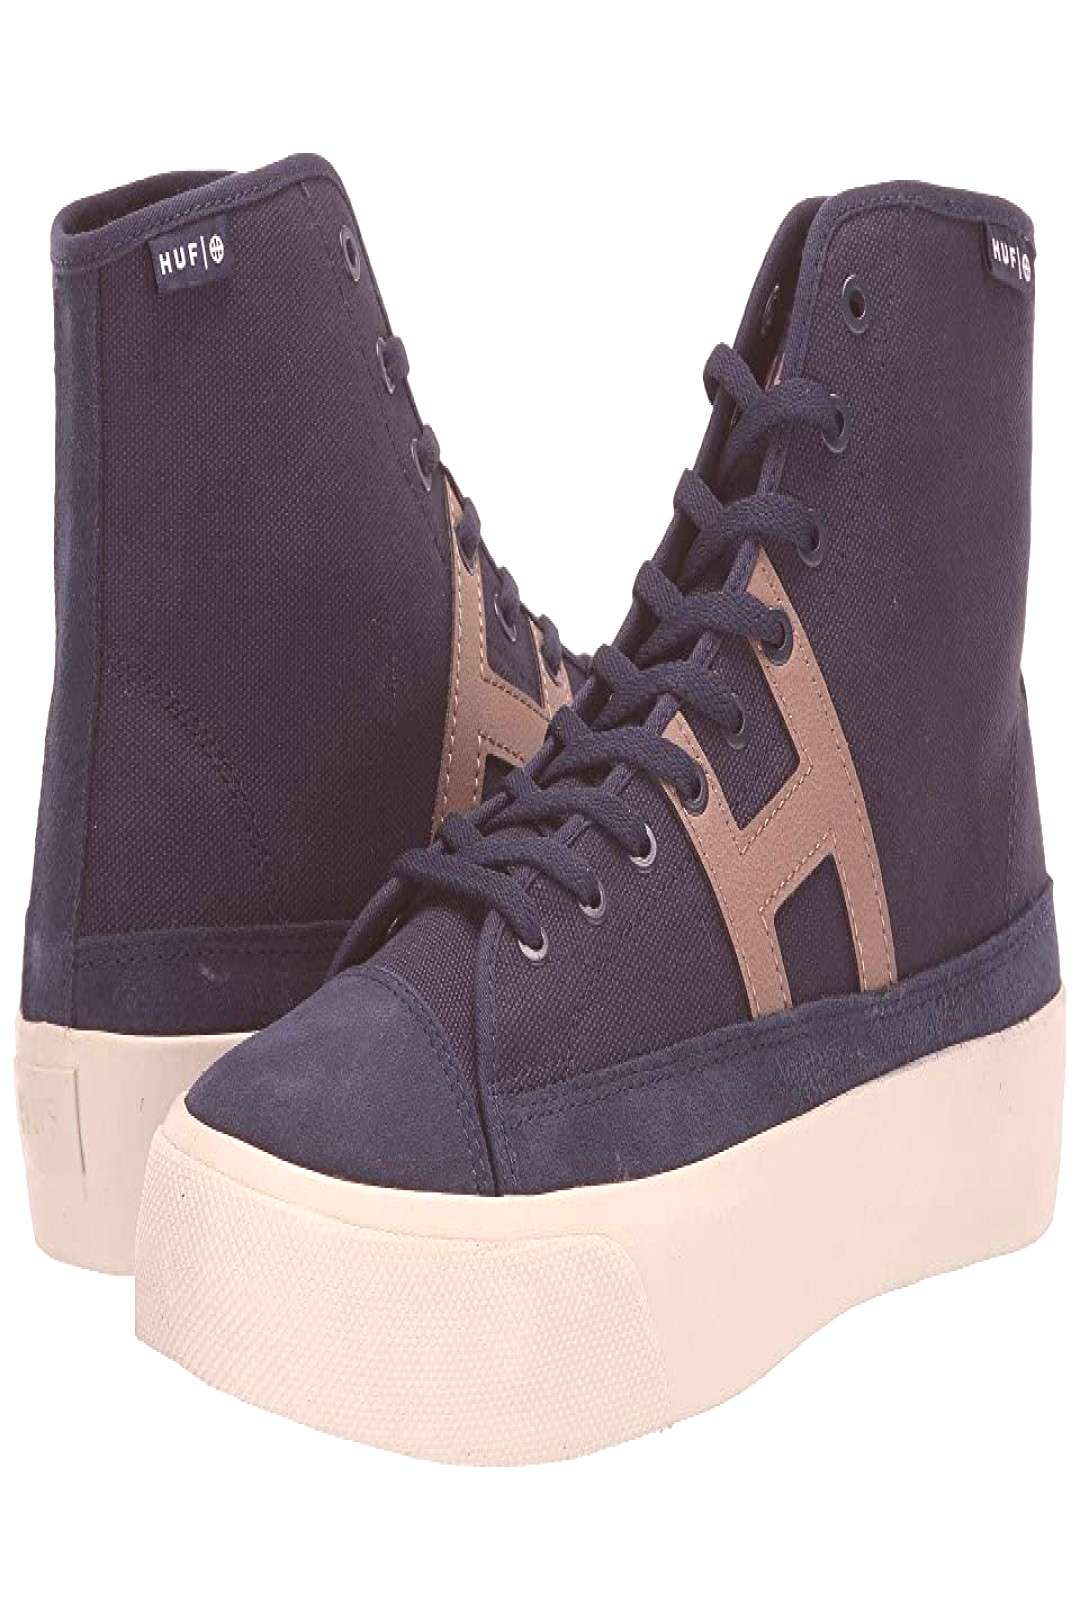 HUF Hupper 2 Hi (Navy) Mens Skate Shoes. Bring timeless style to your board with the clean look of